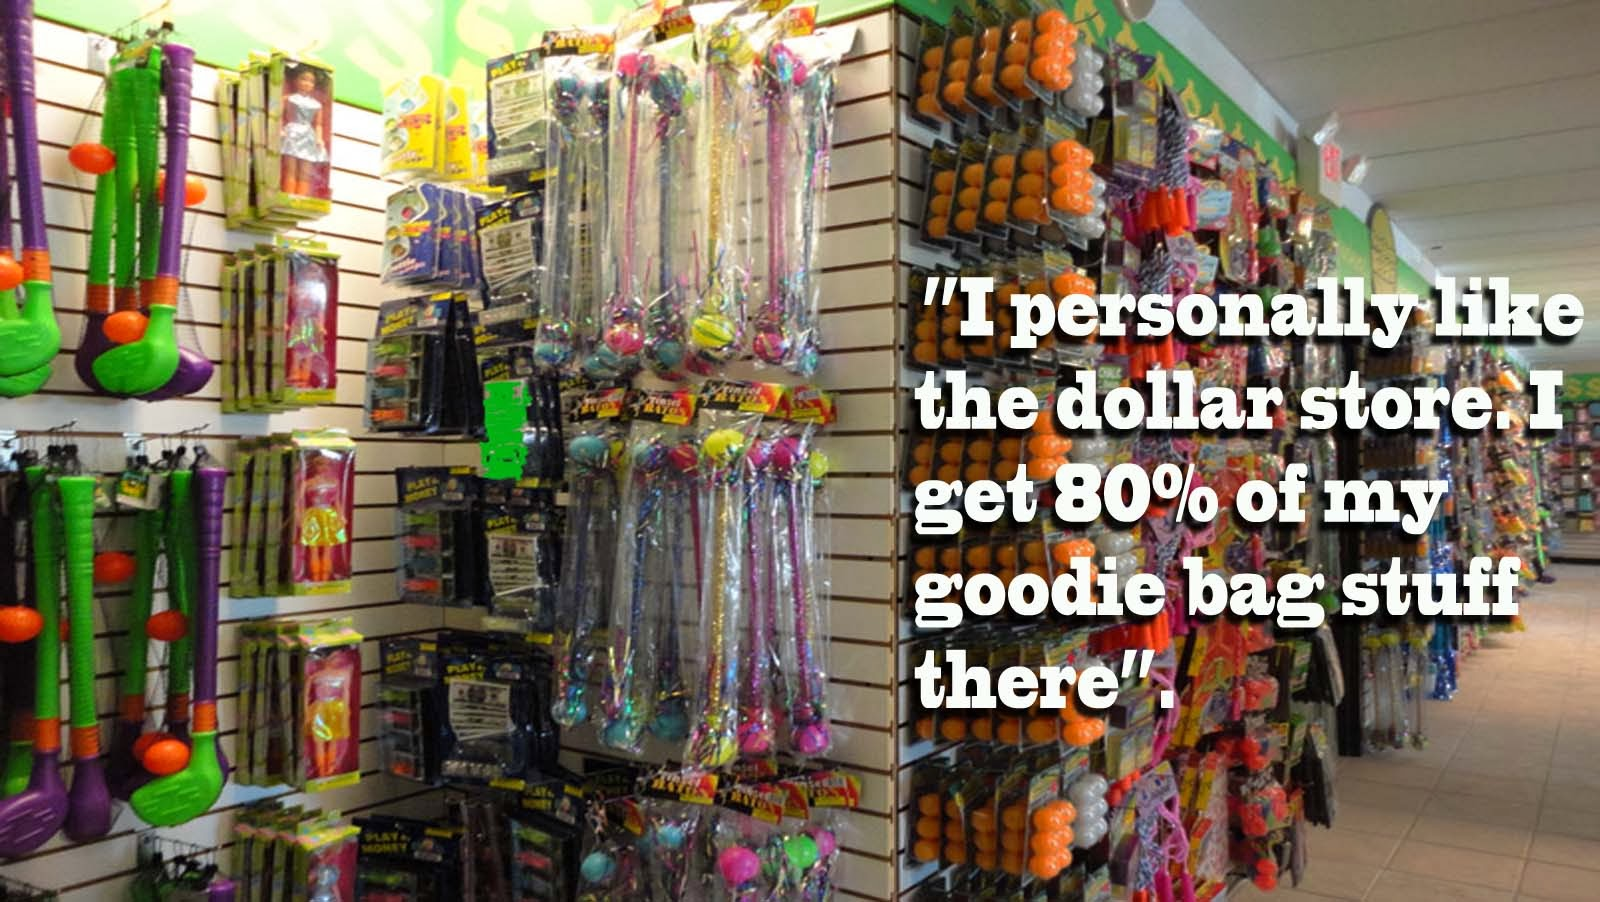 Looking On Line I Have Seen A Bunch Of Cool Things That Are Inexpensive And Easy To Use For Gift Bags Personally Like The Dollar Store